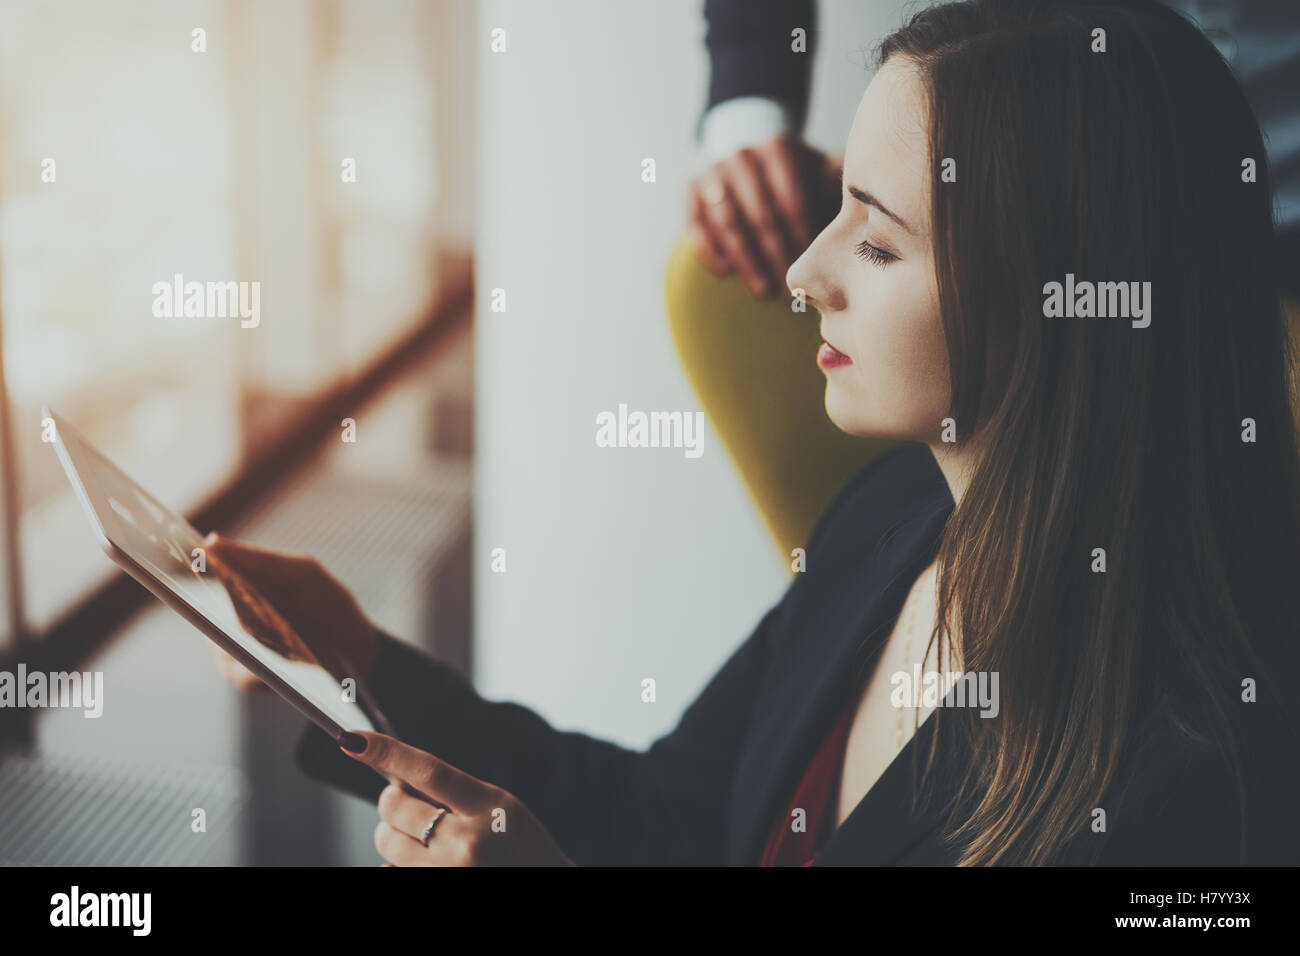 Young serious successful woman entrepreneur in formal business suite sitting with digital tablet next to window - Stock Image